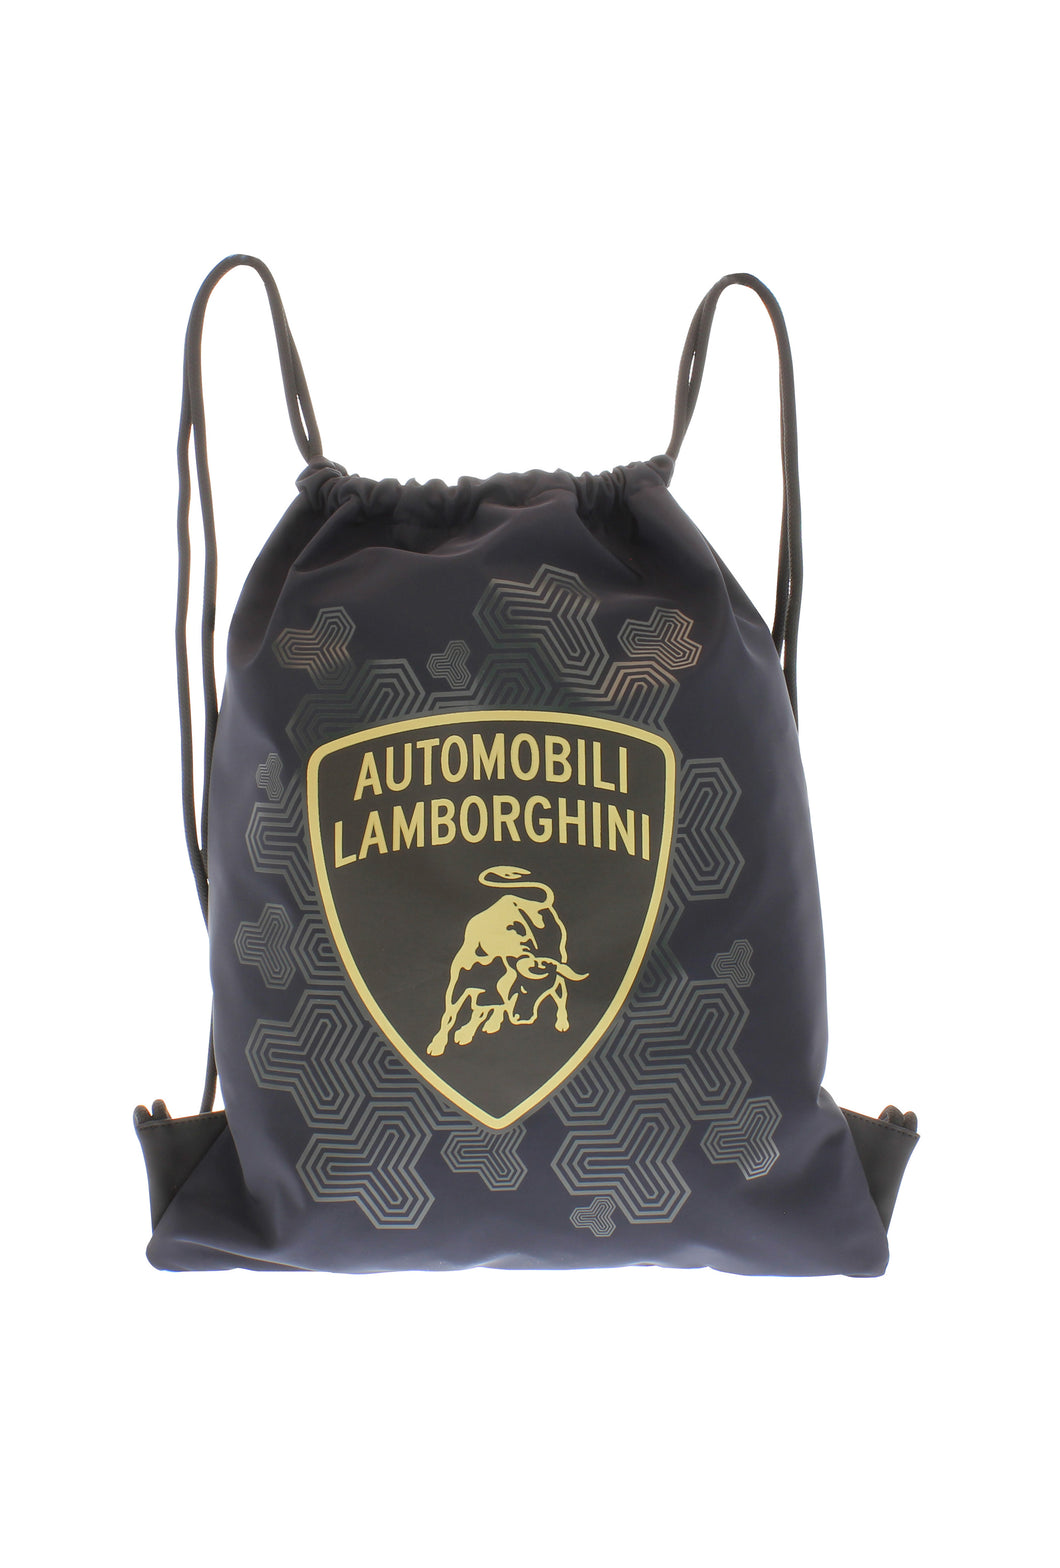 Lamborghini Drawstring Bag Black